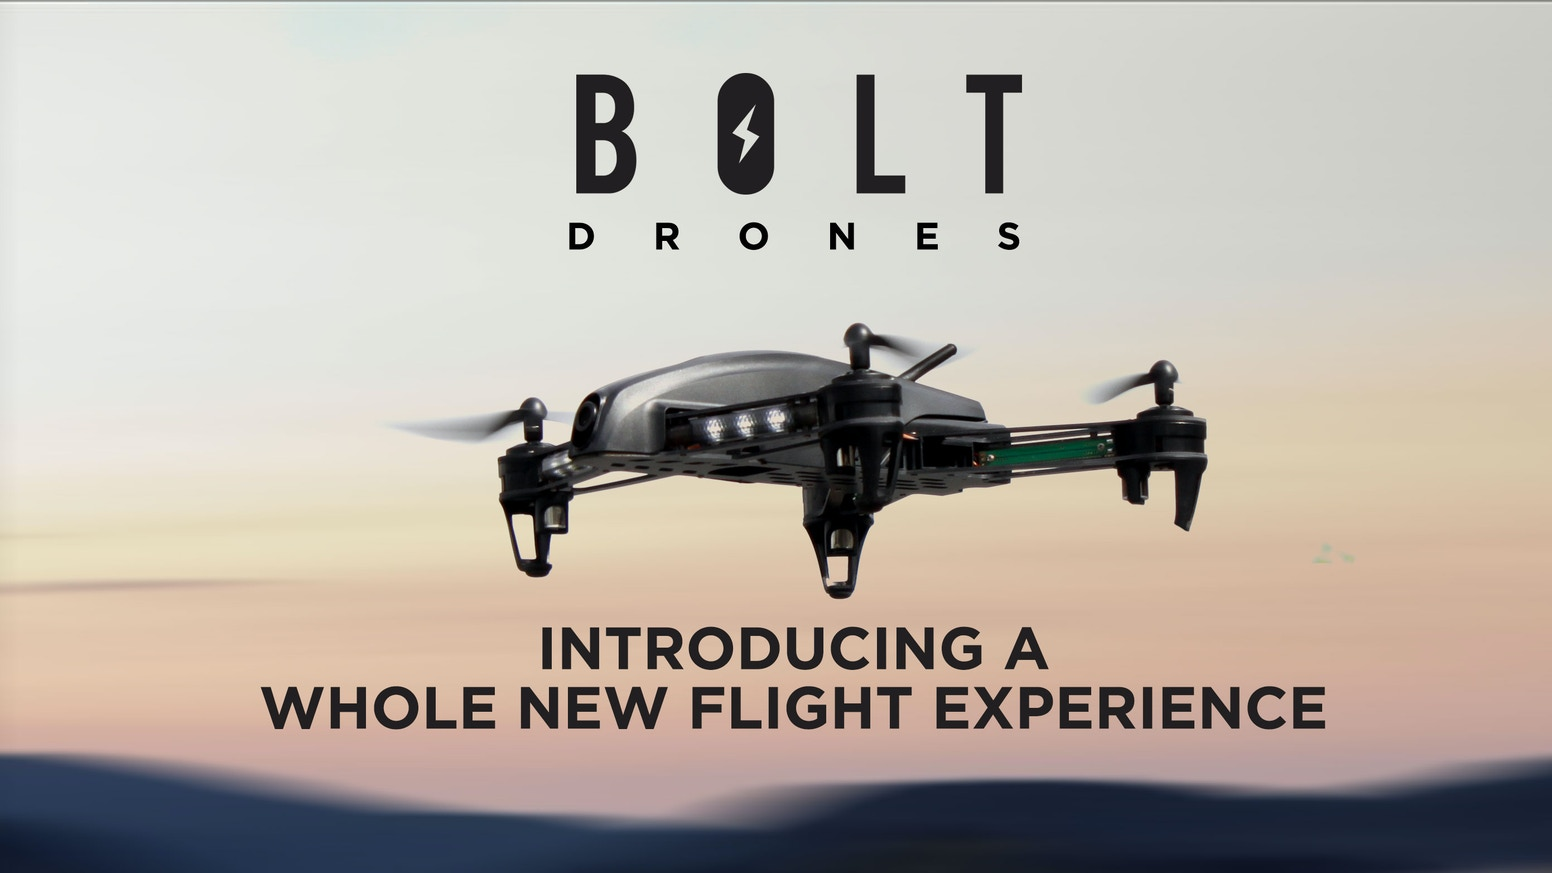 Introducing A Whole New Flight Experience An Innovative And Versatile First Person View Drone At